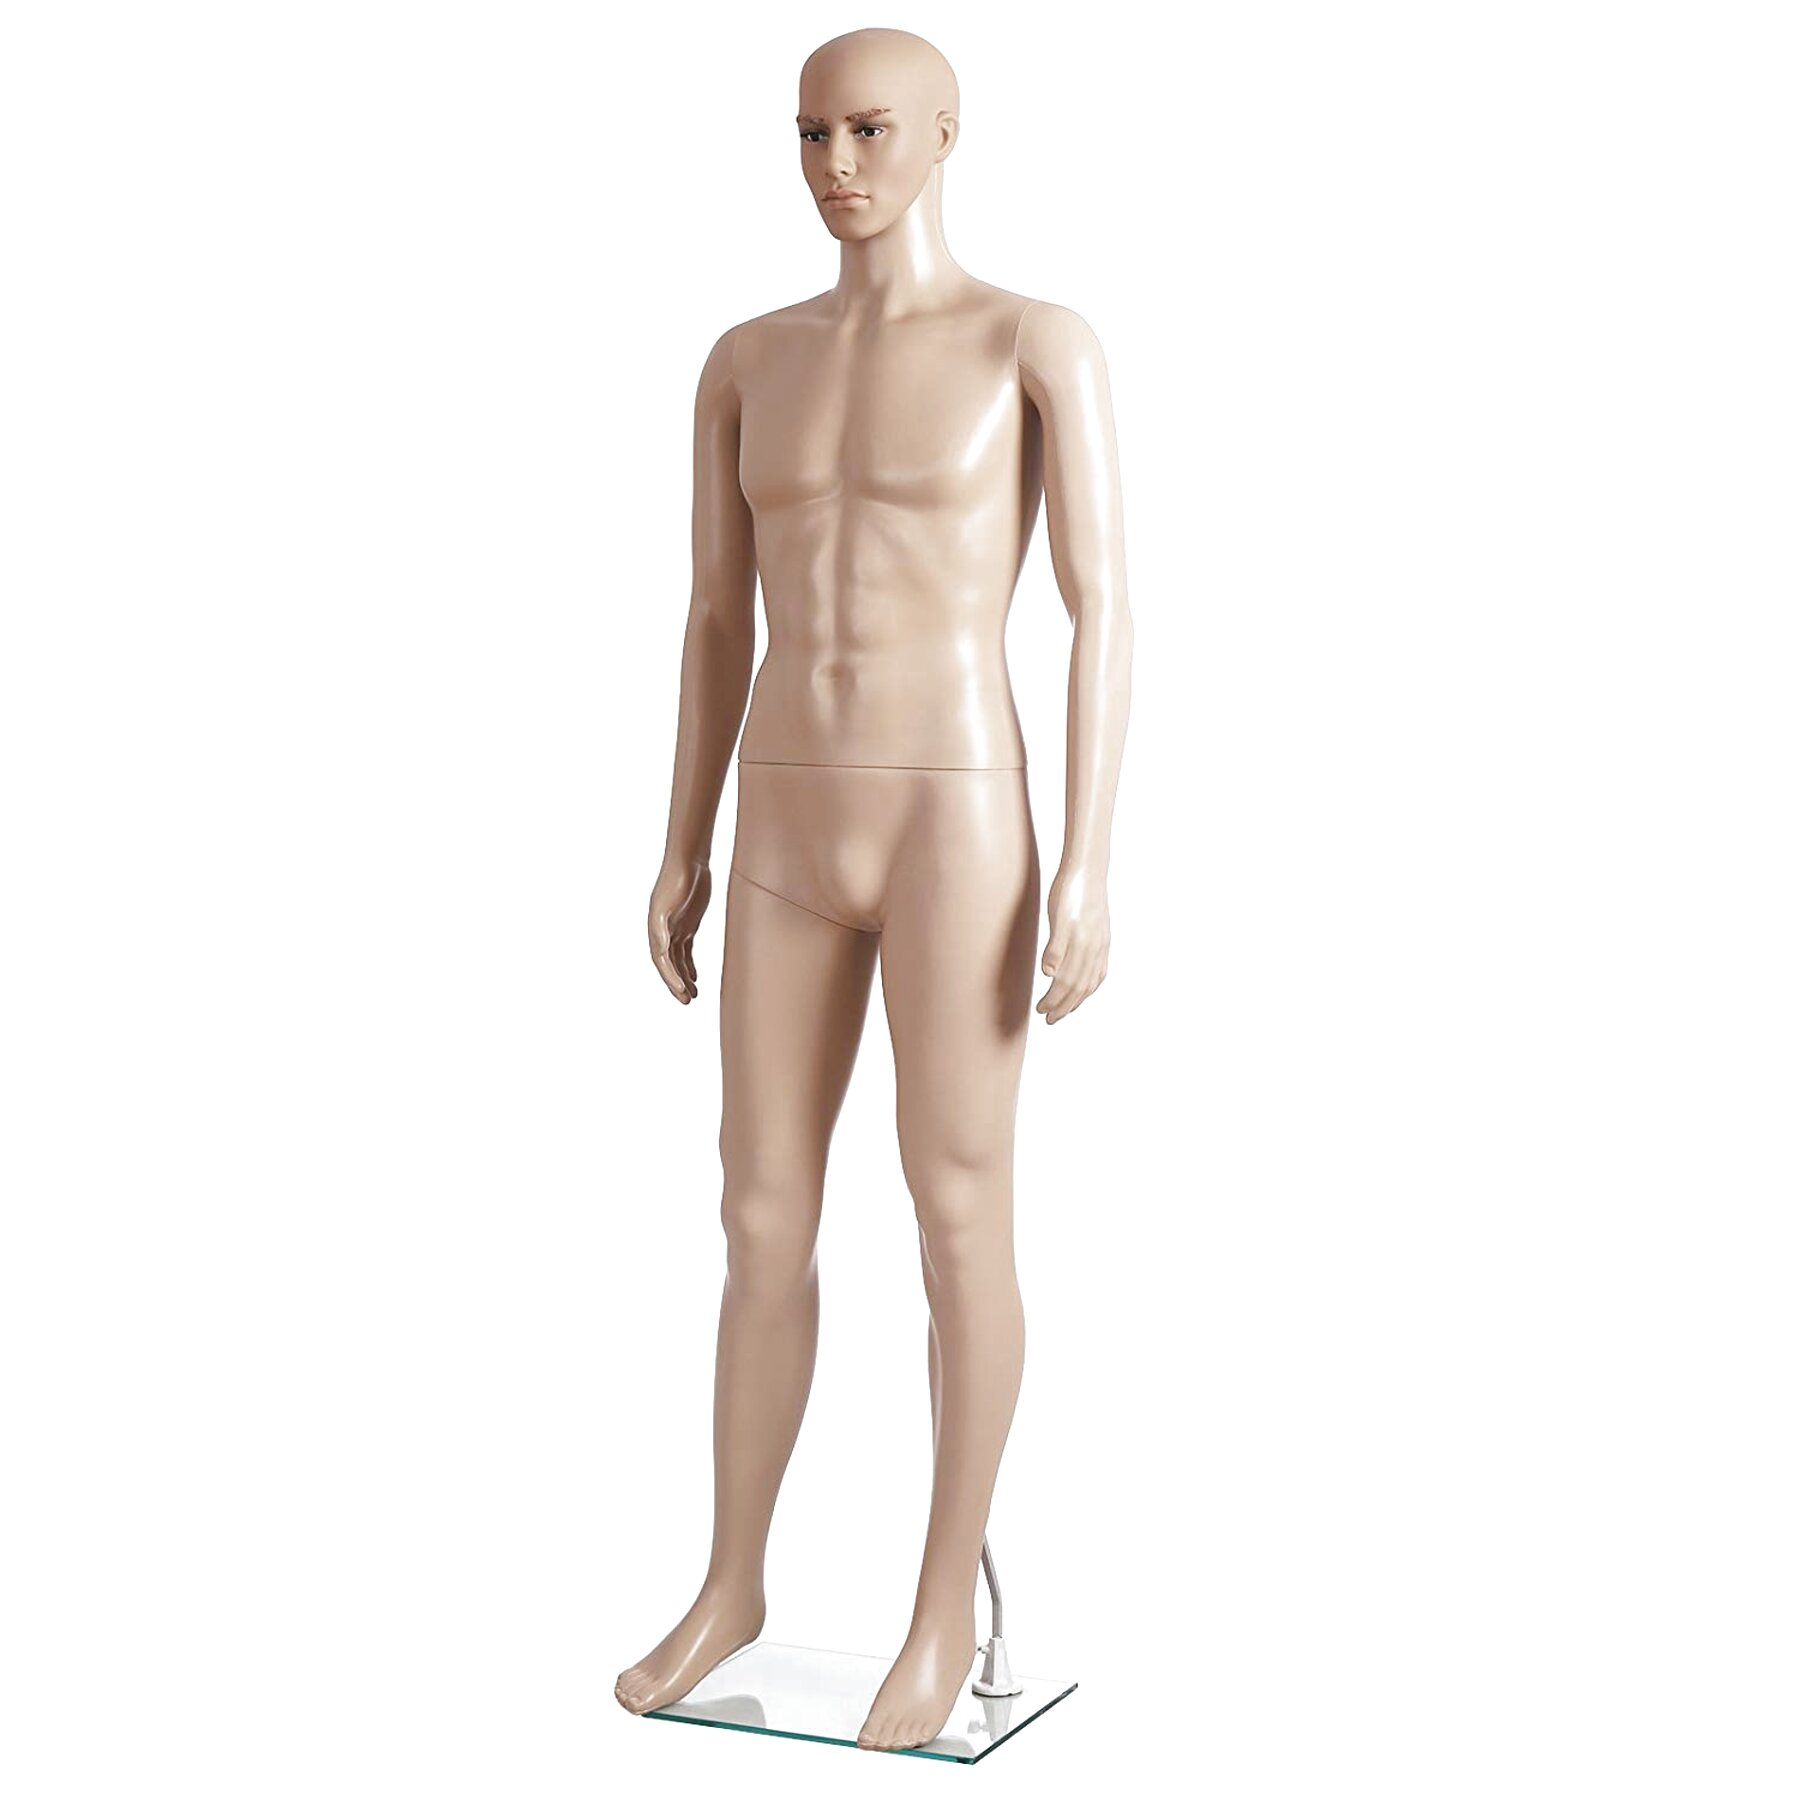 male dummy for sale